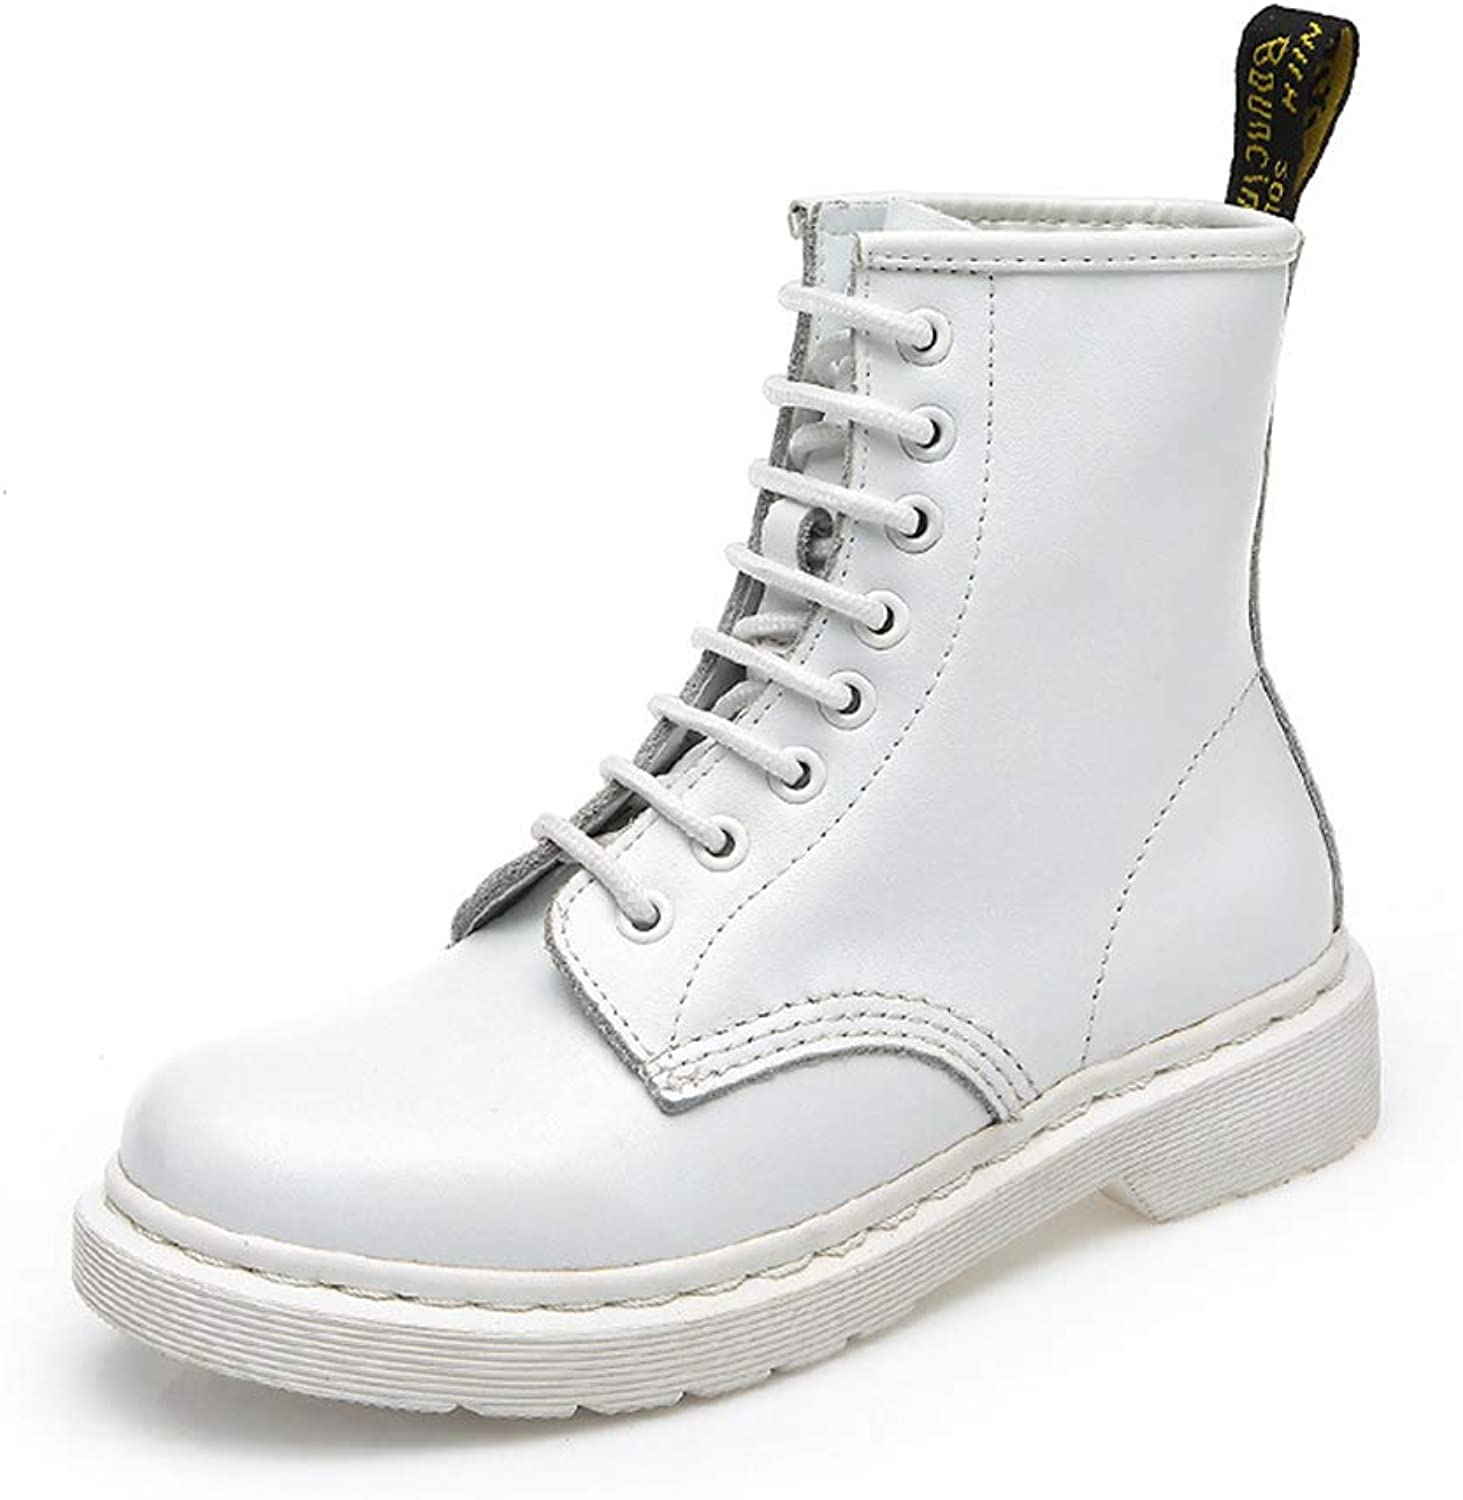 FORTUN Martin Boots British Wind Short Boots Flat shoes Retro Bare Boots